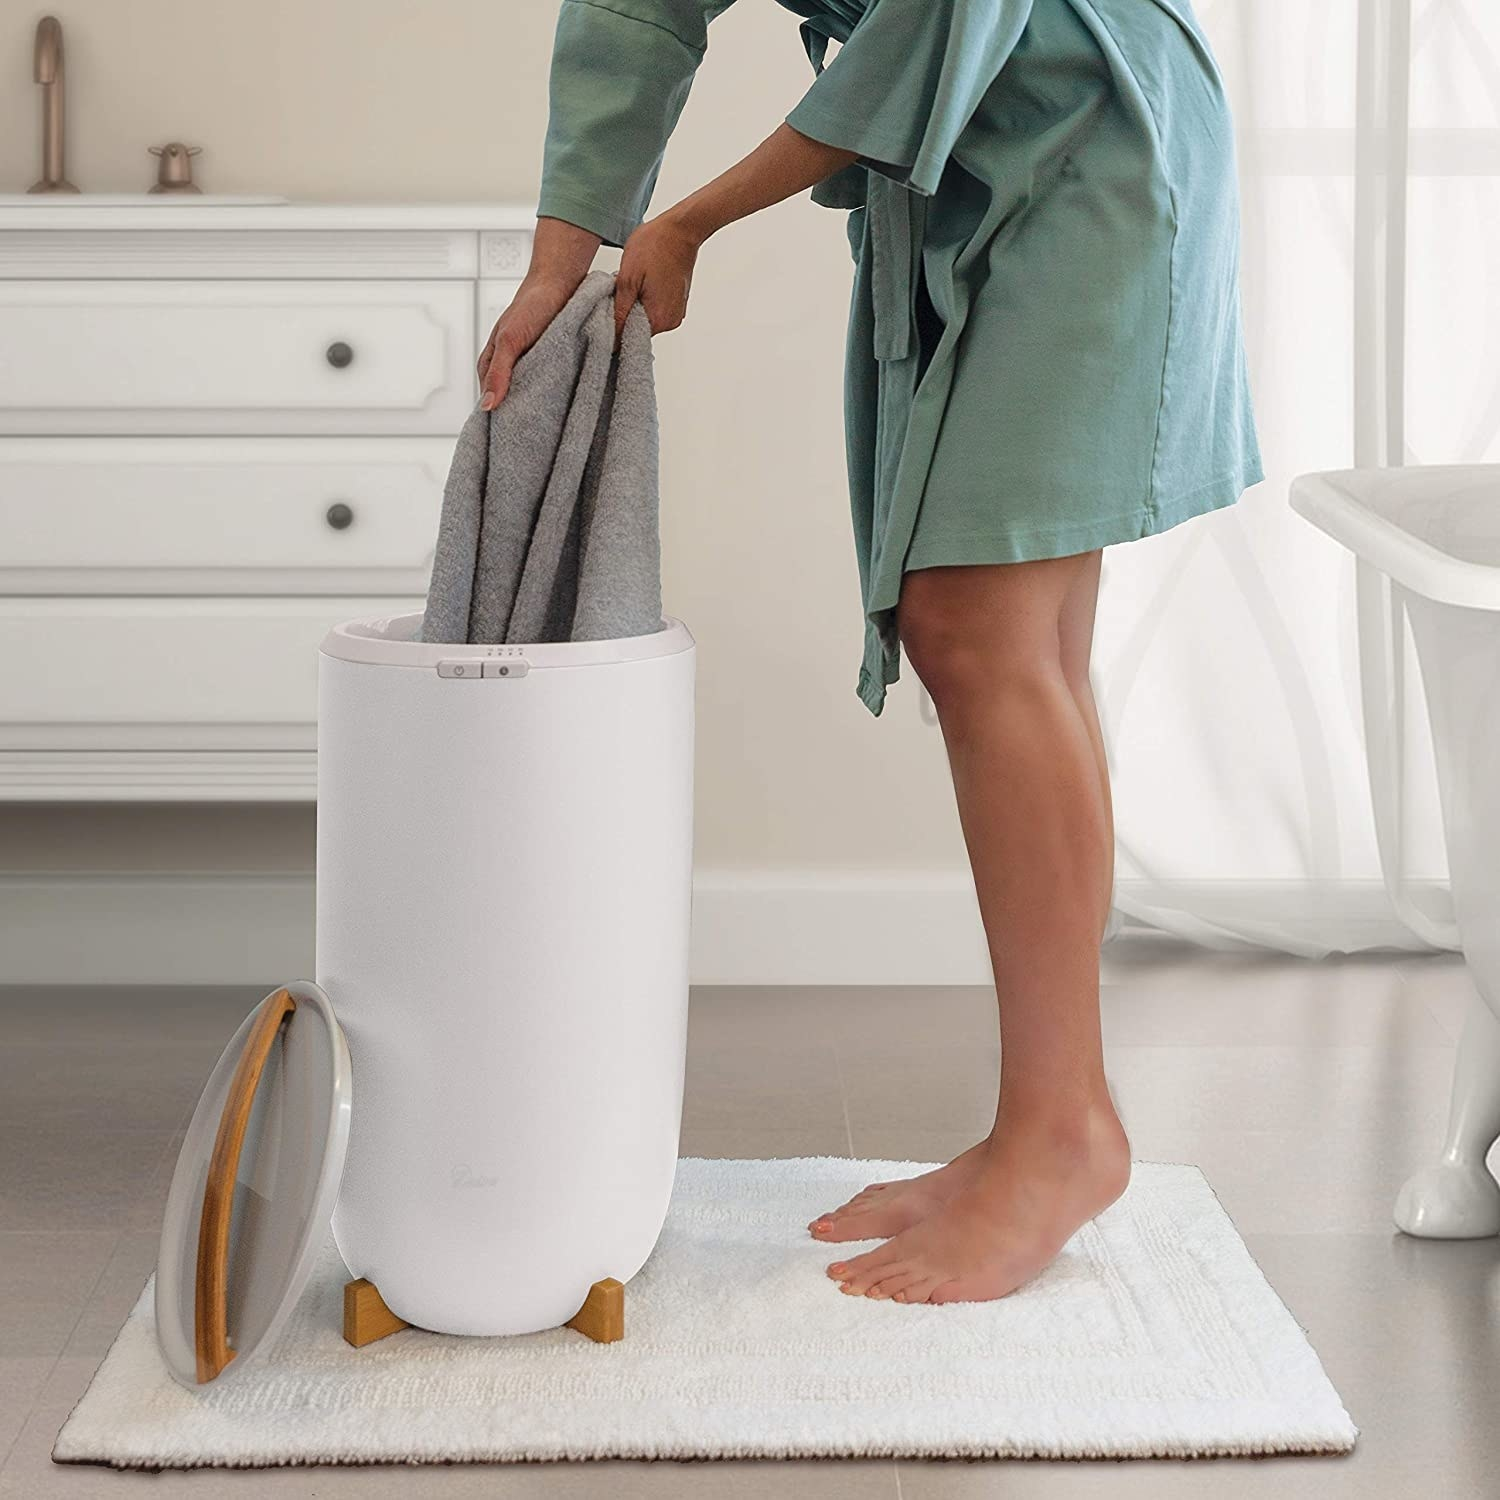 A person taking a towel our of the warmer